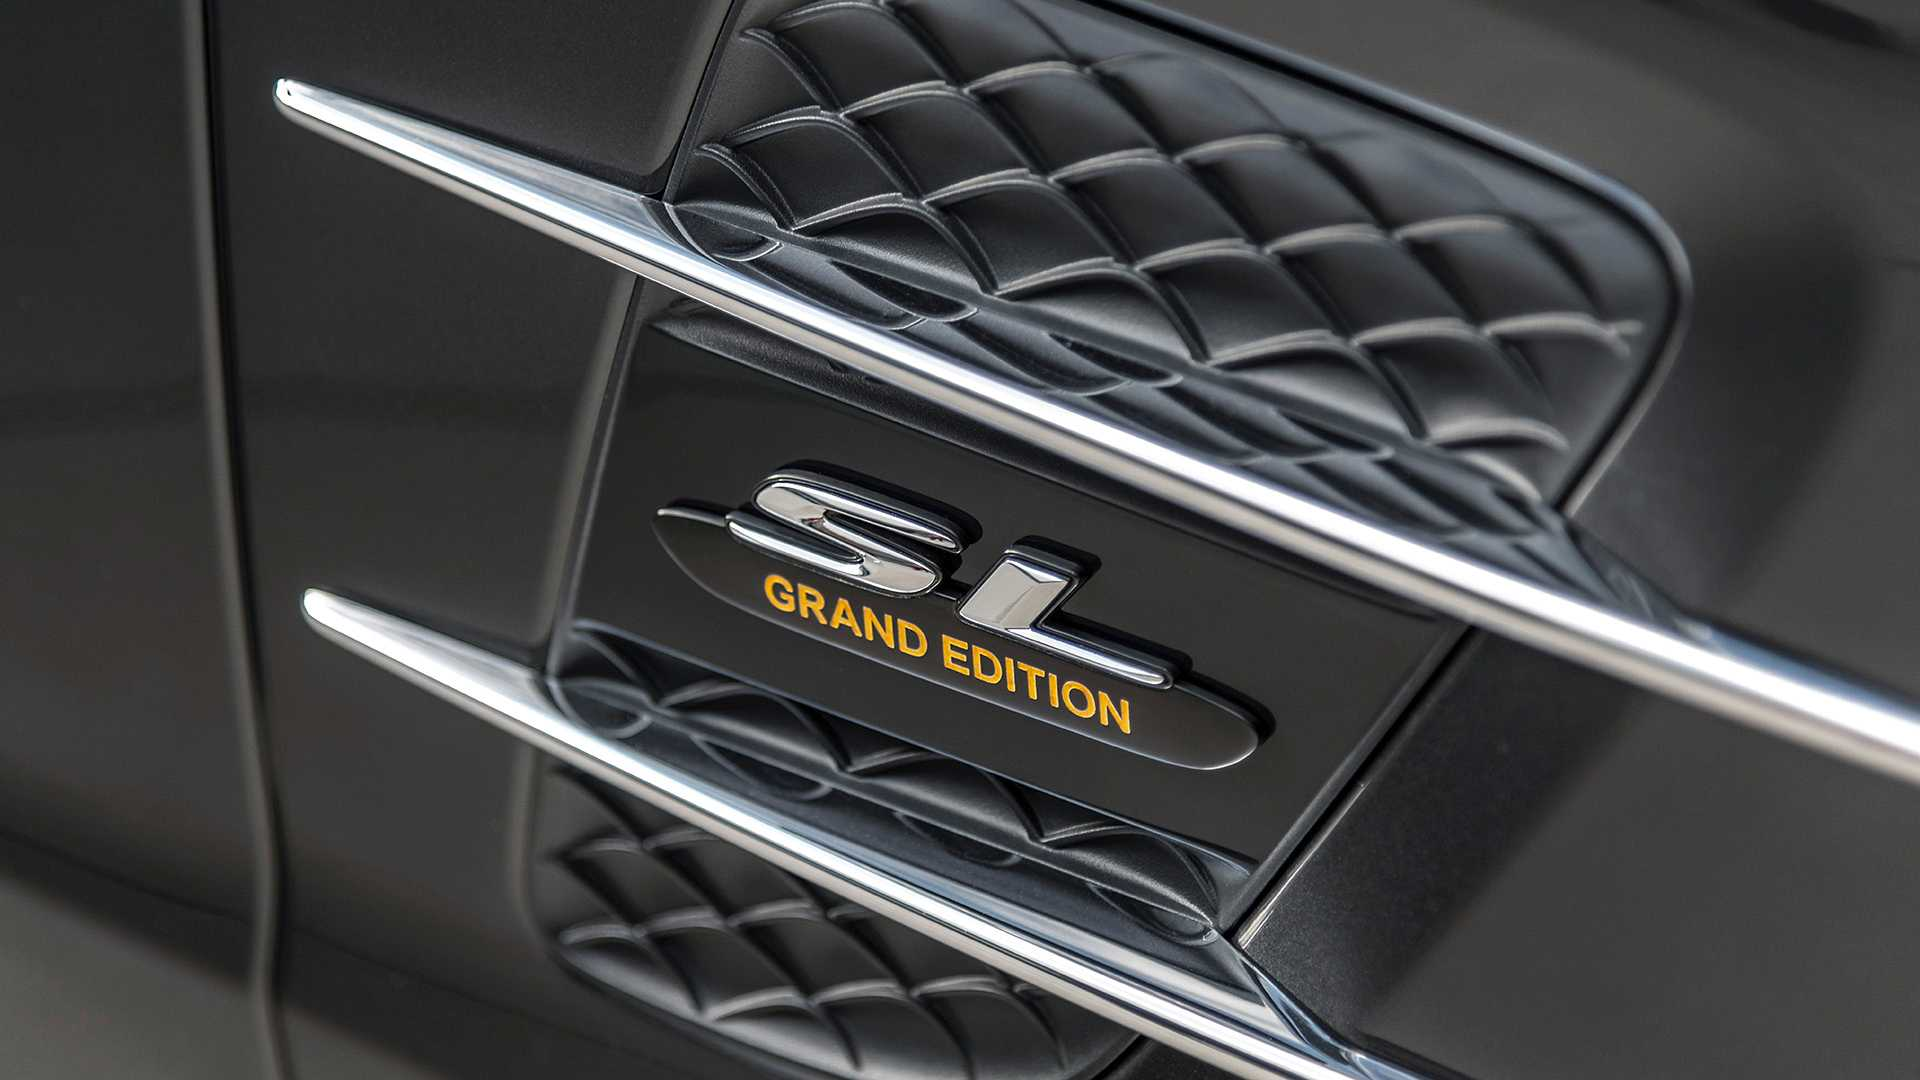 2020 Mercedes-Benz SL 500 Grand Edition (Color: Graphite Grey) Side Vent Wallpapers (9)